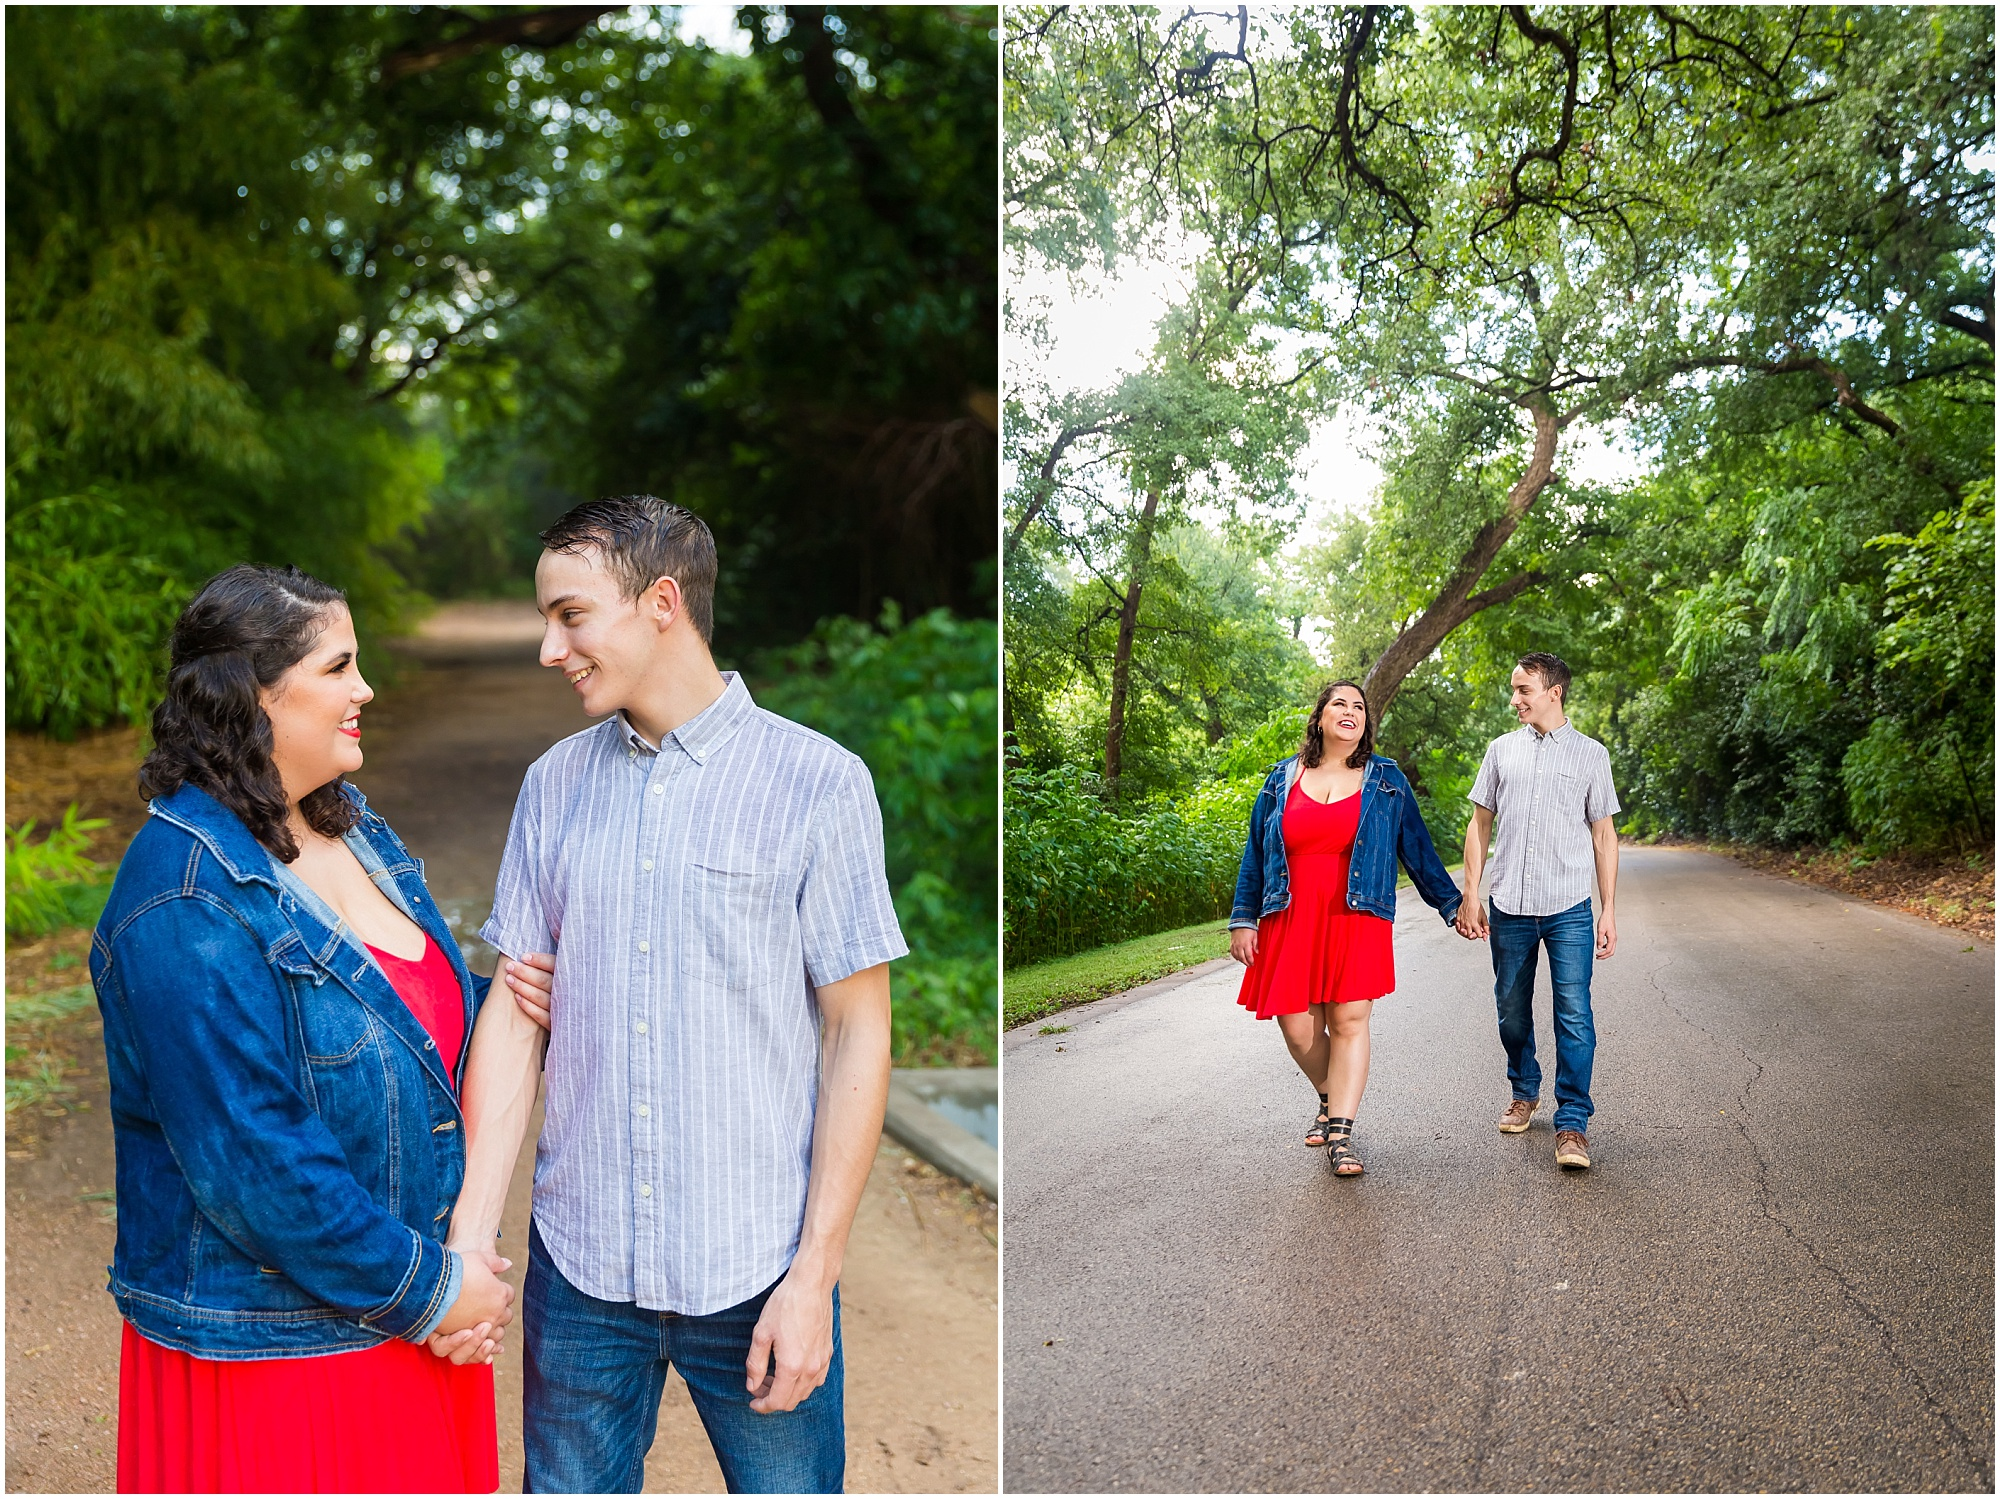 A couple walk hand-in-hand down a rain-soaked road during their engagement session in Cameron Park - Jason & Melaina Photography - www.jasonandmelaina.com